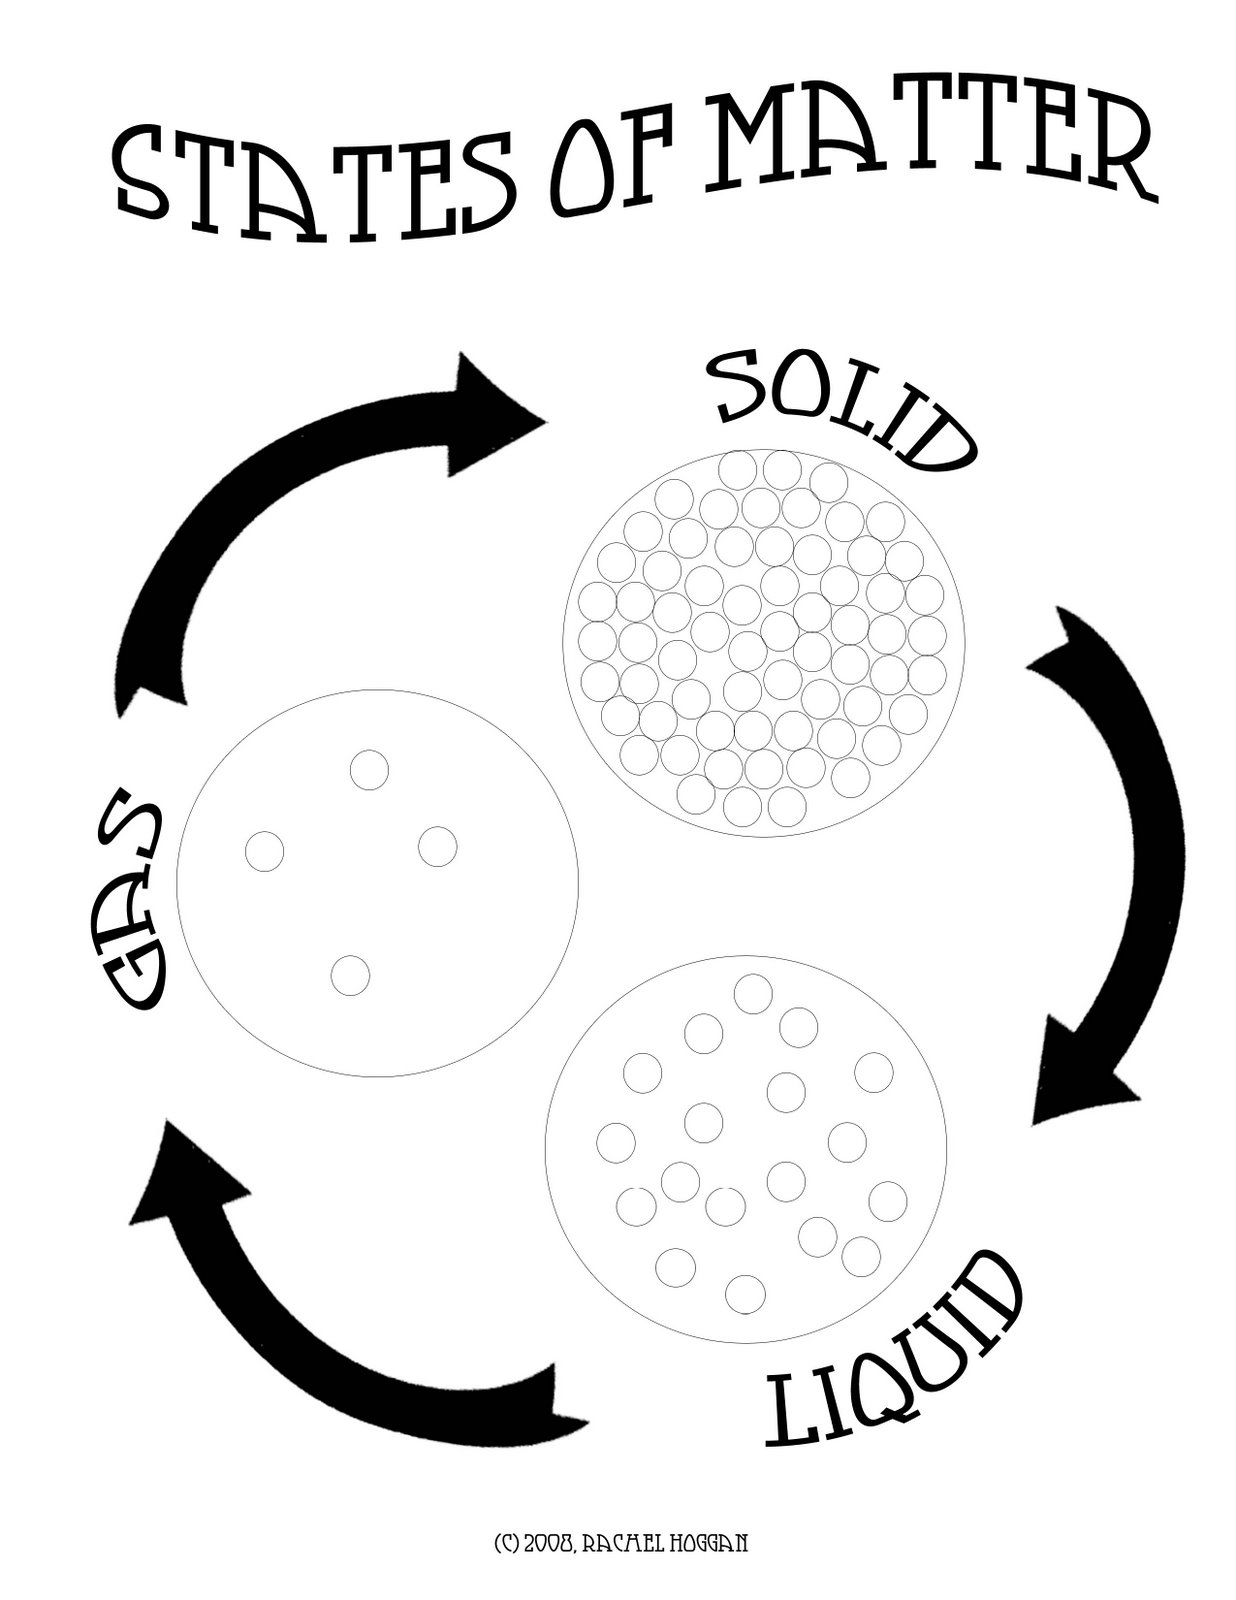 worksheet States Of Matter Worksheets mommy lessons 101 science lesson plan states of matter below is an image the handout i created that you could print out to go with this activity